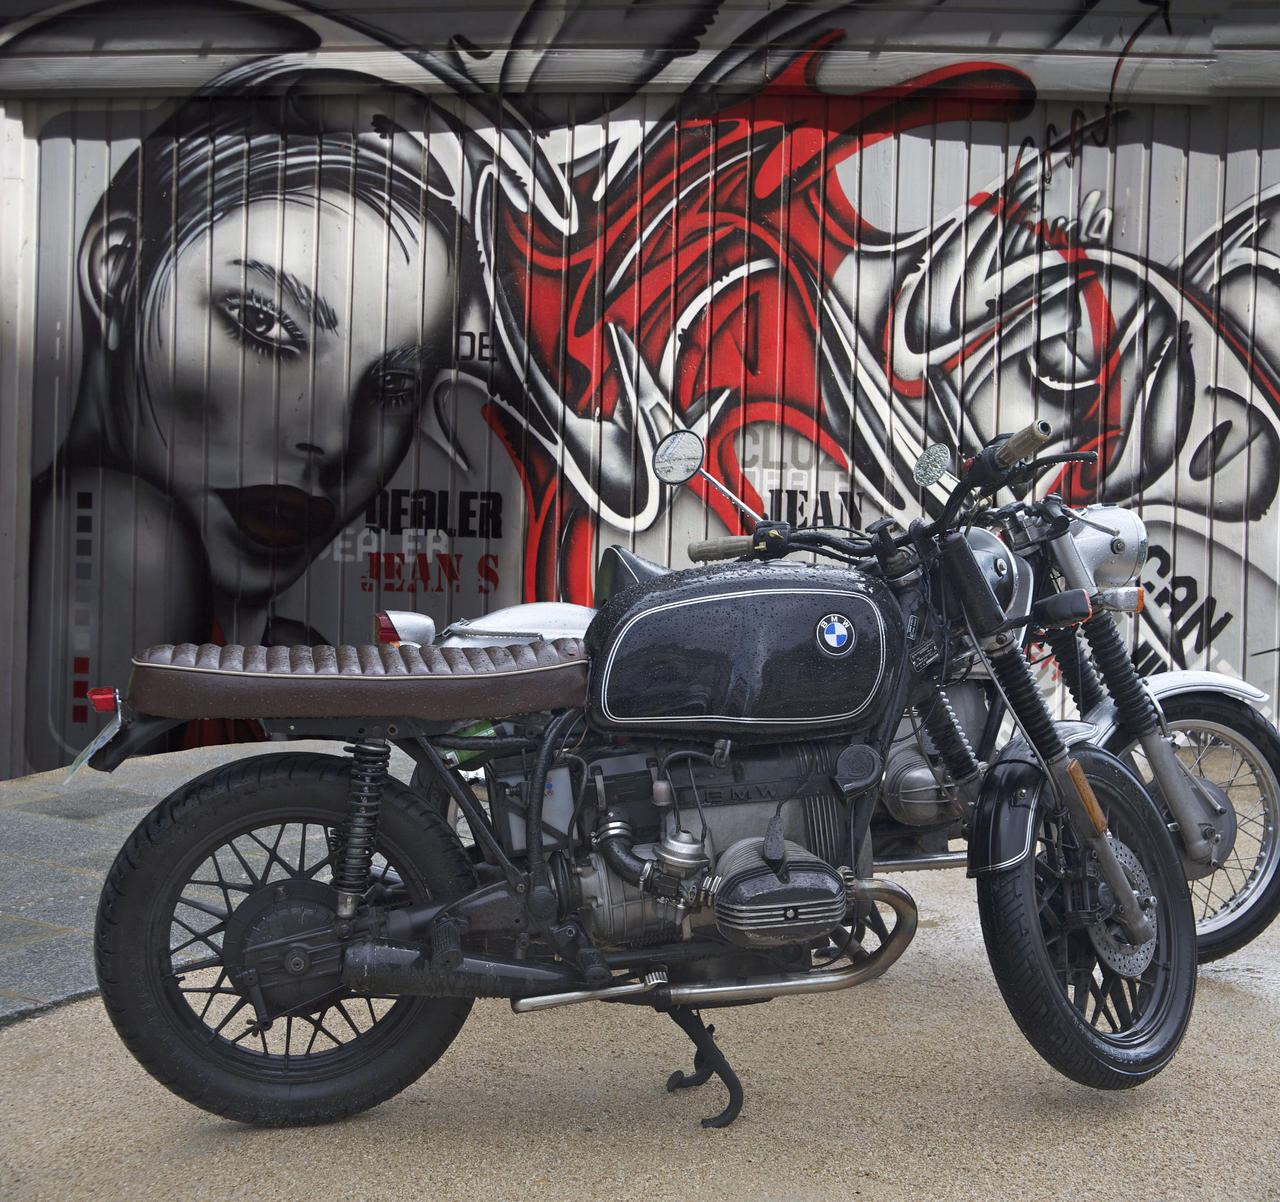 Old BMW bike 2 by Dany-Art on DeviantArt